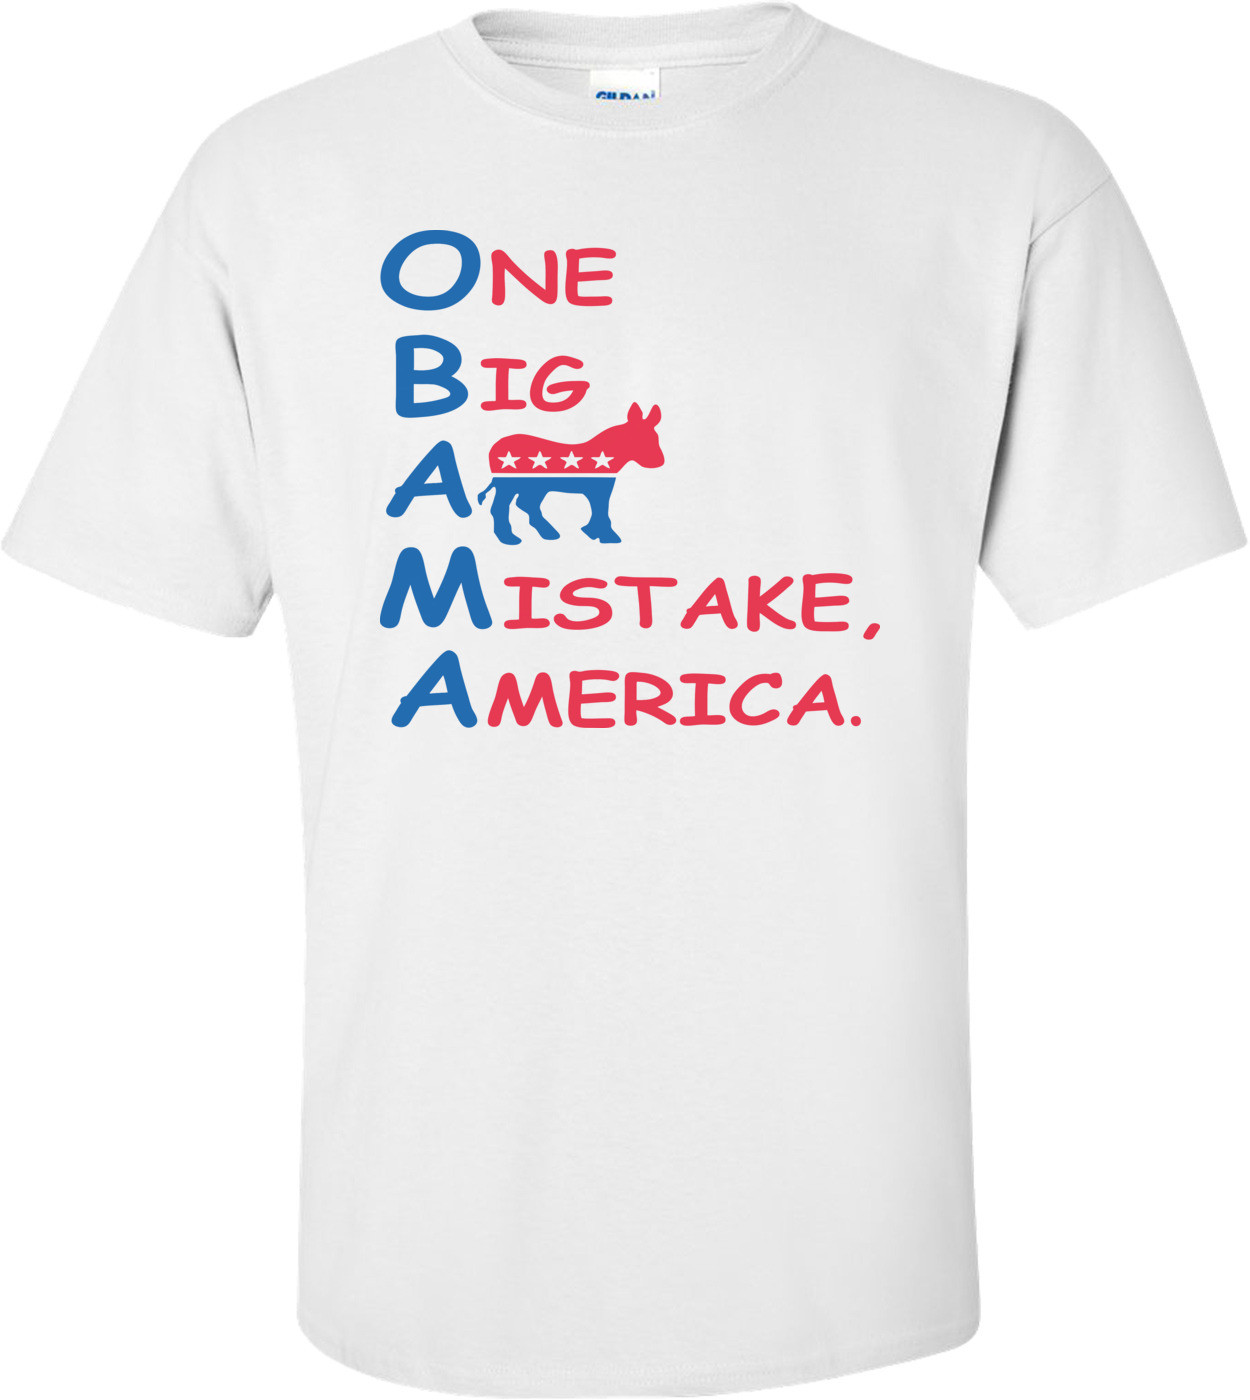 One Big Ass Mistake America Anti Obama T-shirt